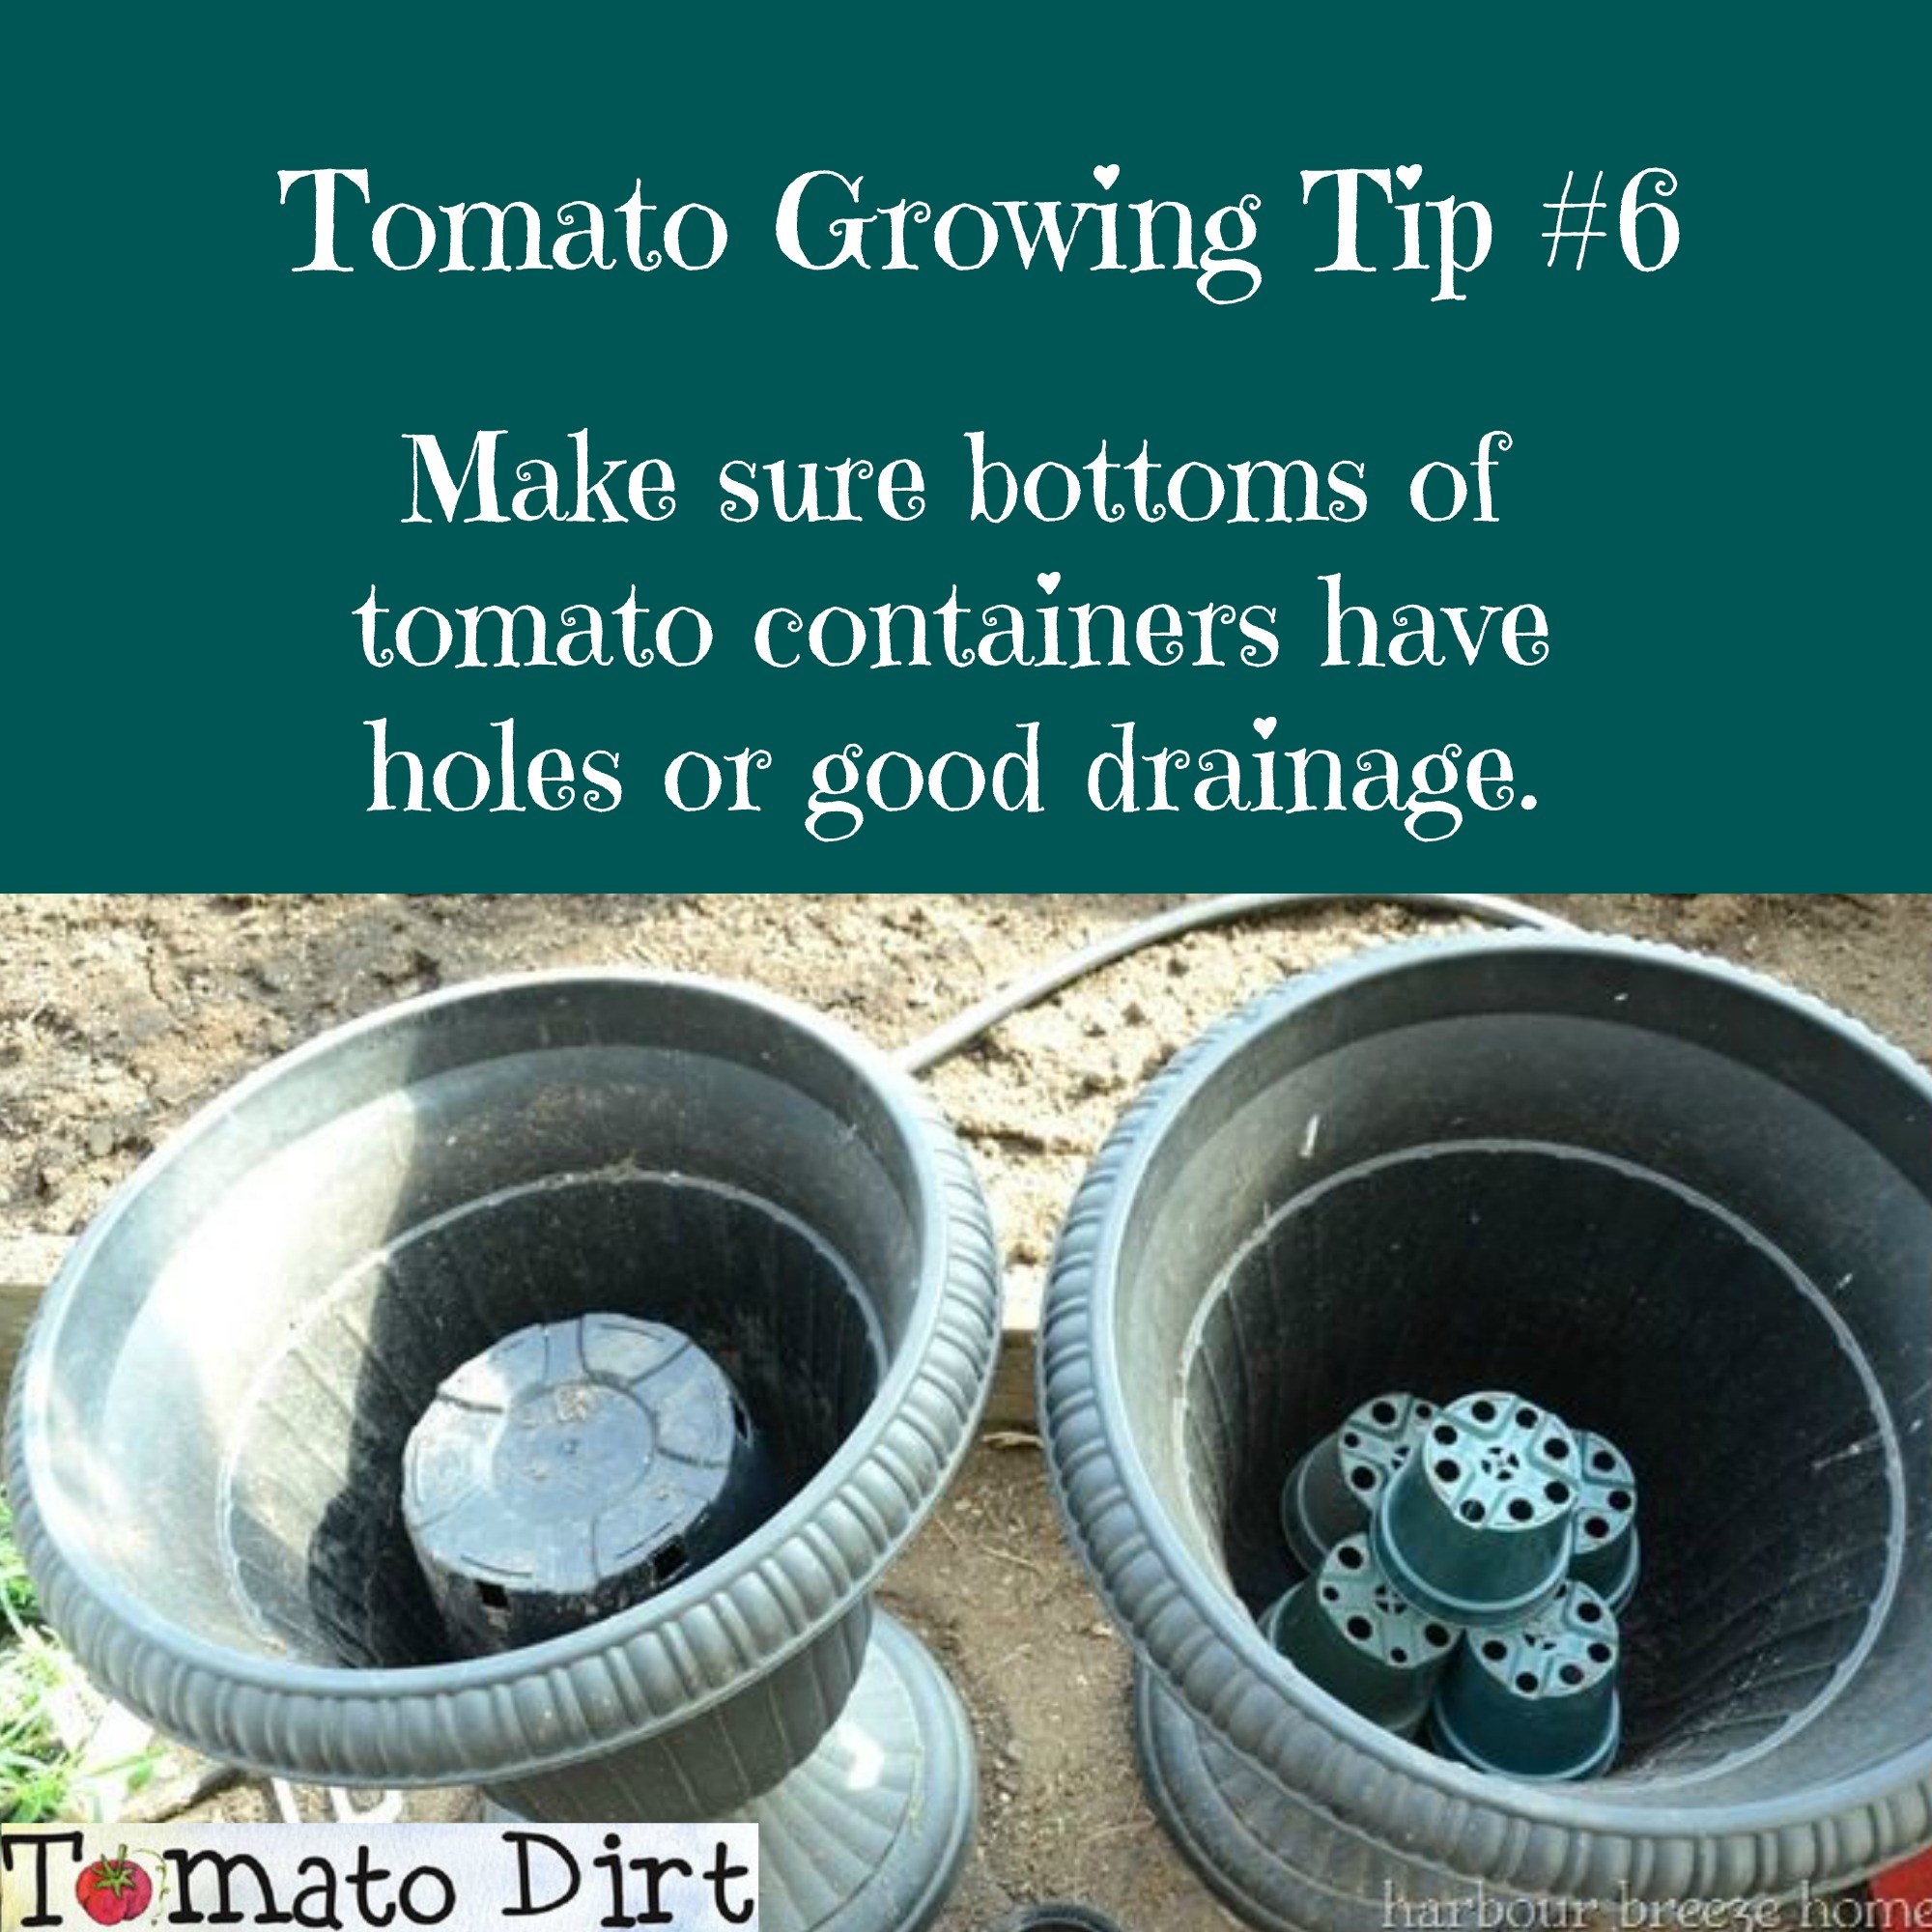 Tomato Growing Tip #6: make sure tomato containers have holes for drainage with Tomato Dirt